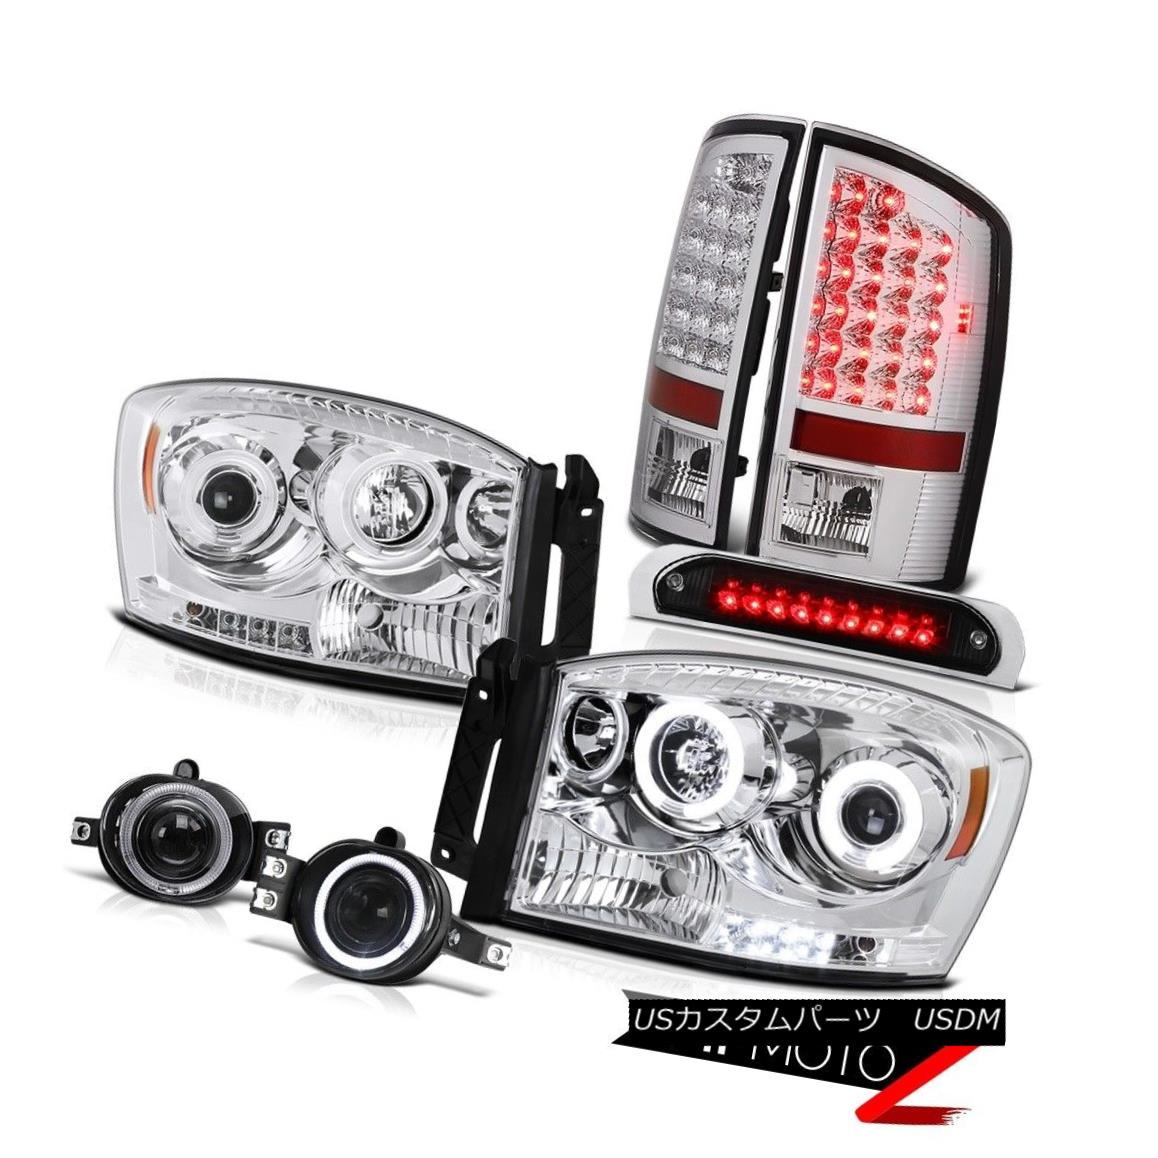 ヘッドライト Fluorescence Halo Headlights LED Brake Taillamps Glass Fog Black 3rd 06 Ram 2500 蛍光HaloヘッドライトLEDブレーキTaillamps Glass Fog Black 3rd 06 Ram 2500